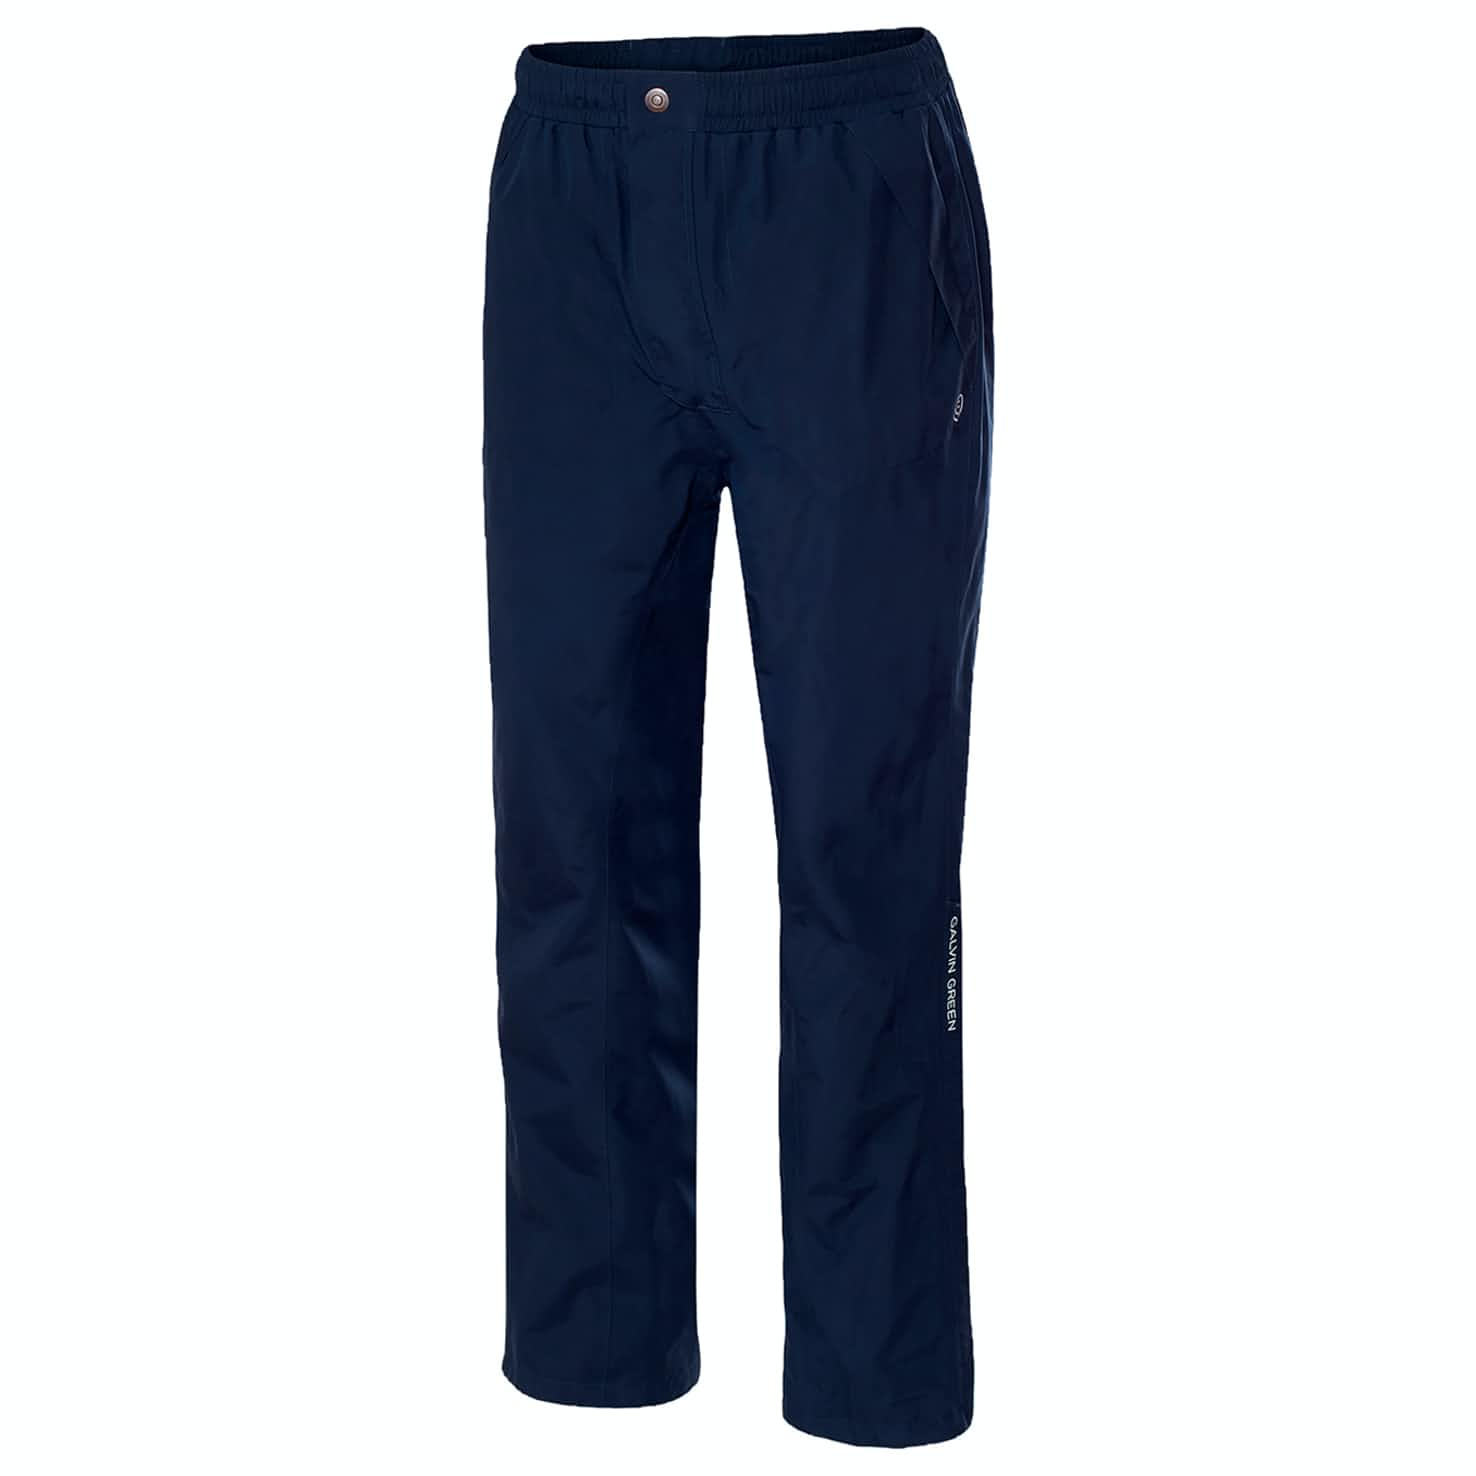 Andy Gore-Tex Stretch Pants Navy - 2020